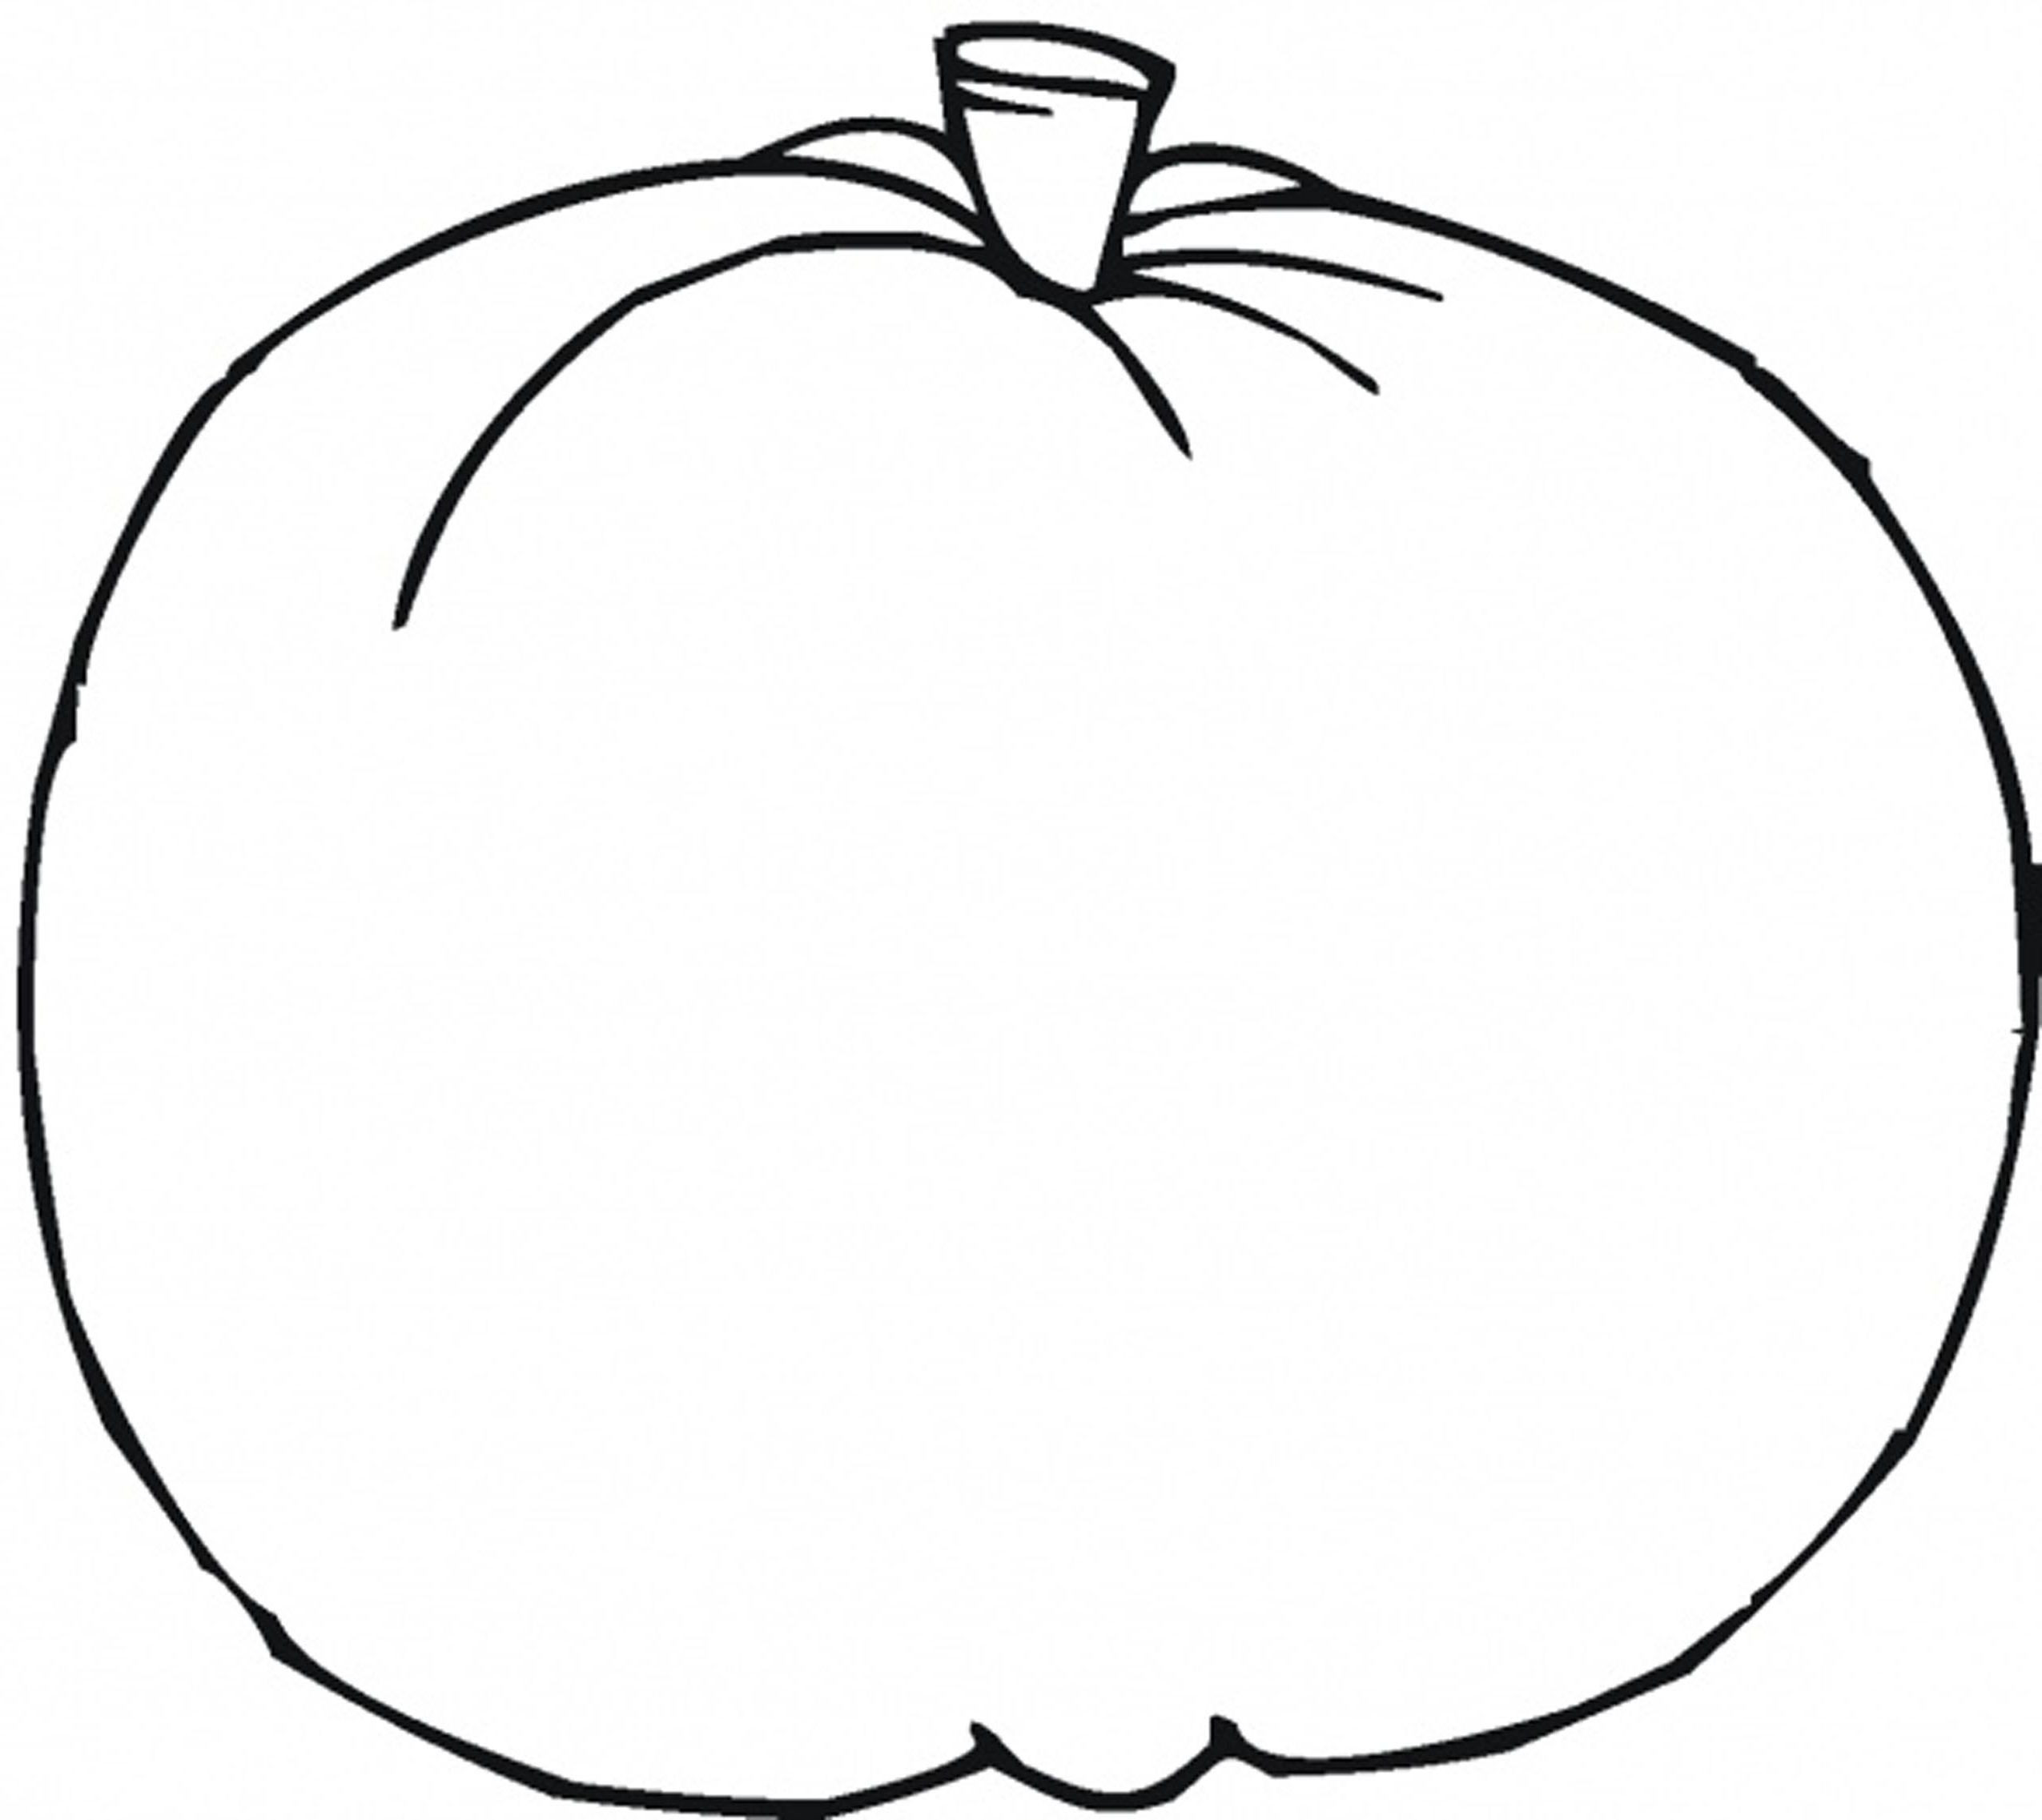 Best ideas about Blank Pumpkin Coloring Sheets For Kids . Save or Pin Blank Pumpkin Template Coloring Home Now.